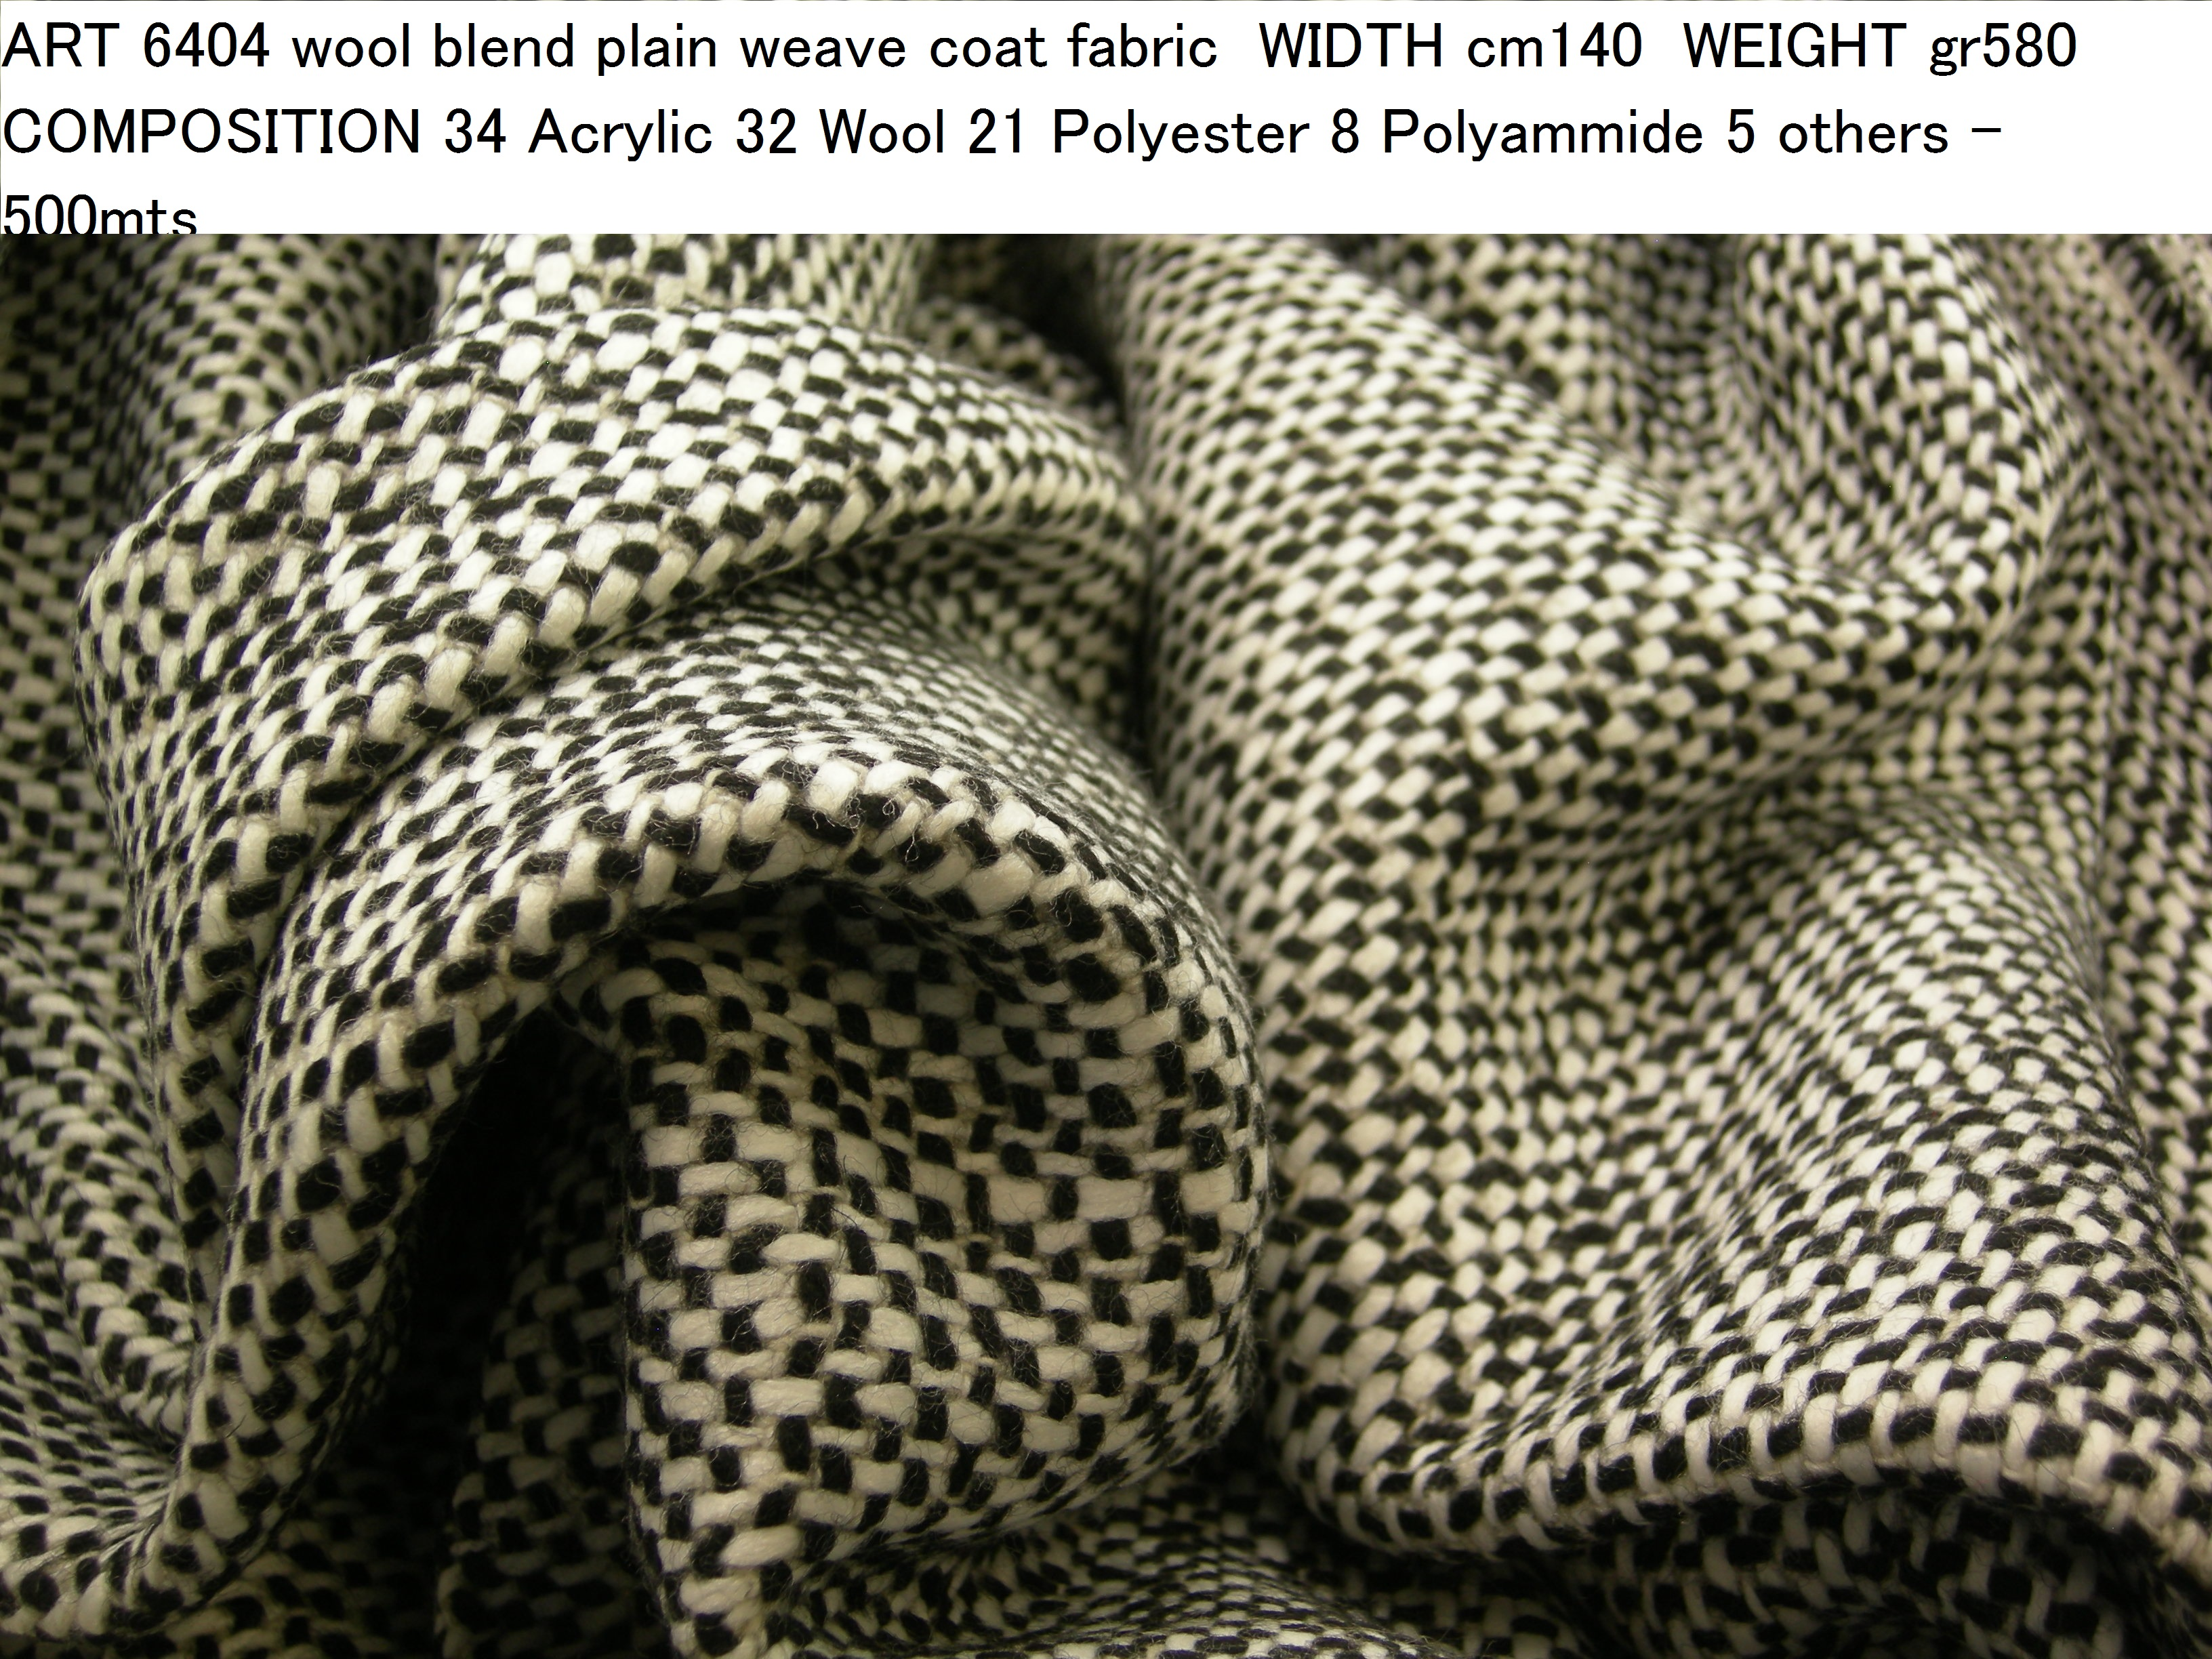 ART 6404 wool blend plain weave coat fabric WIDTH cm140 WEIGHT gr580 COMPOSITION 34 Acrylic 32 Wool 21 Polyester 8 Polyammide 5 others - 500mts